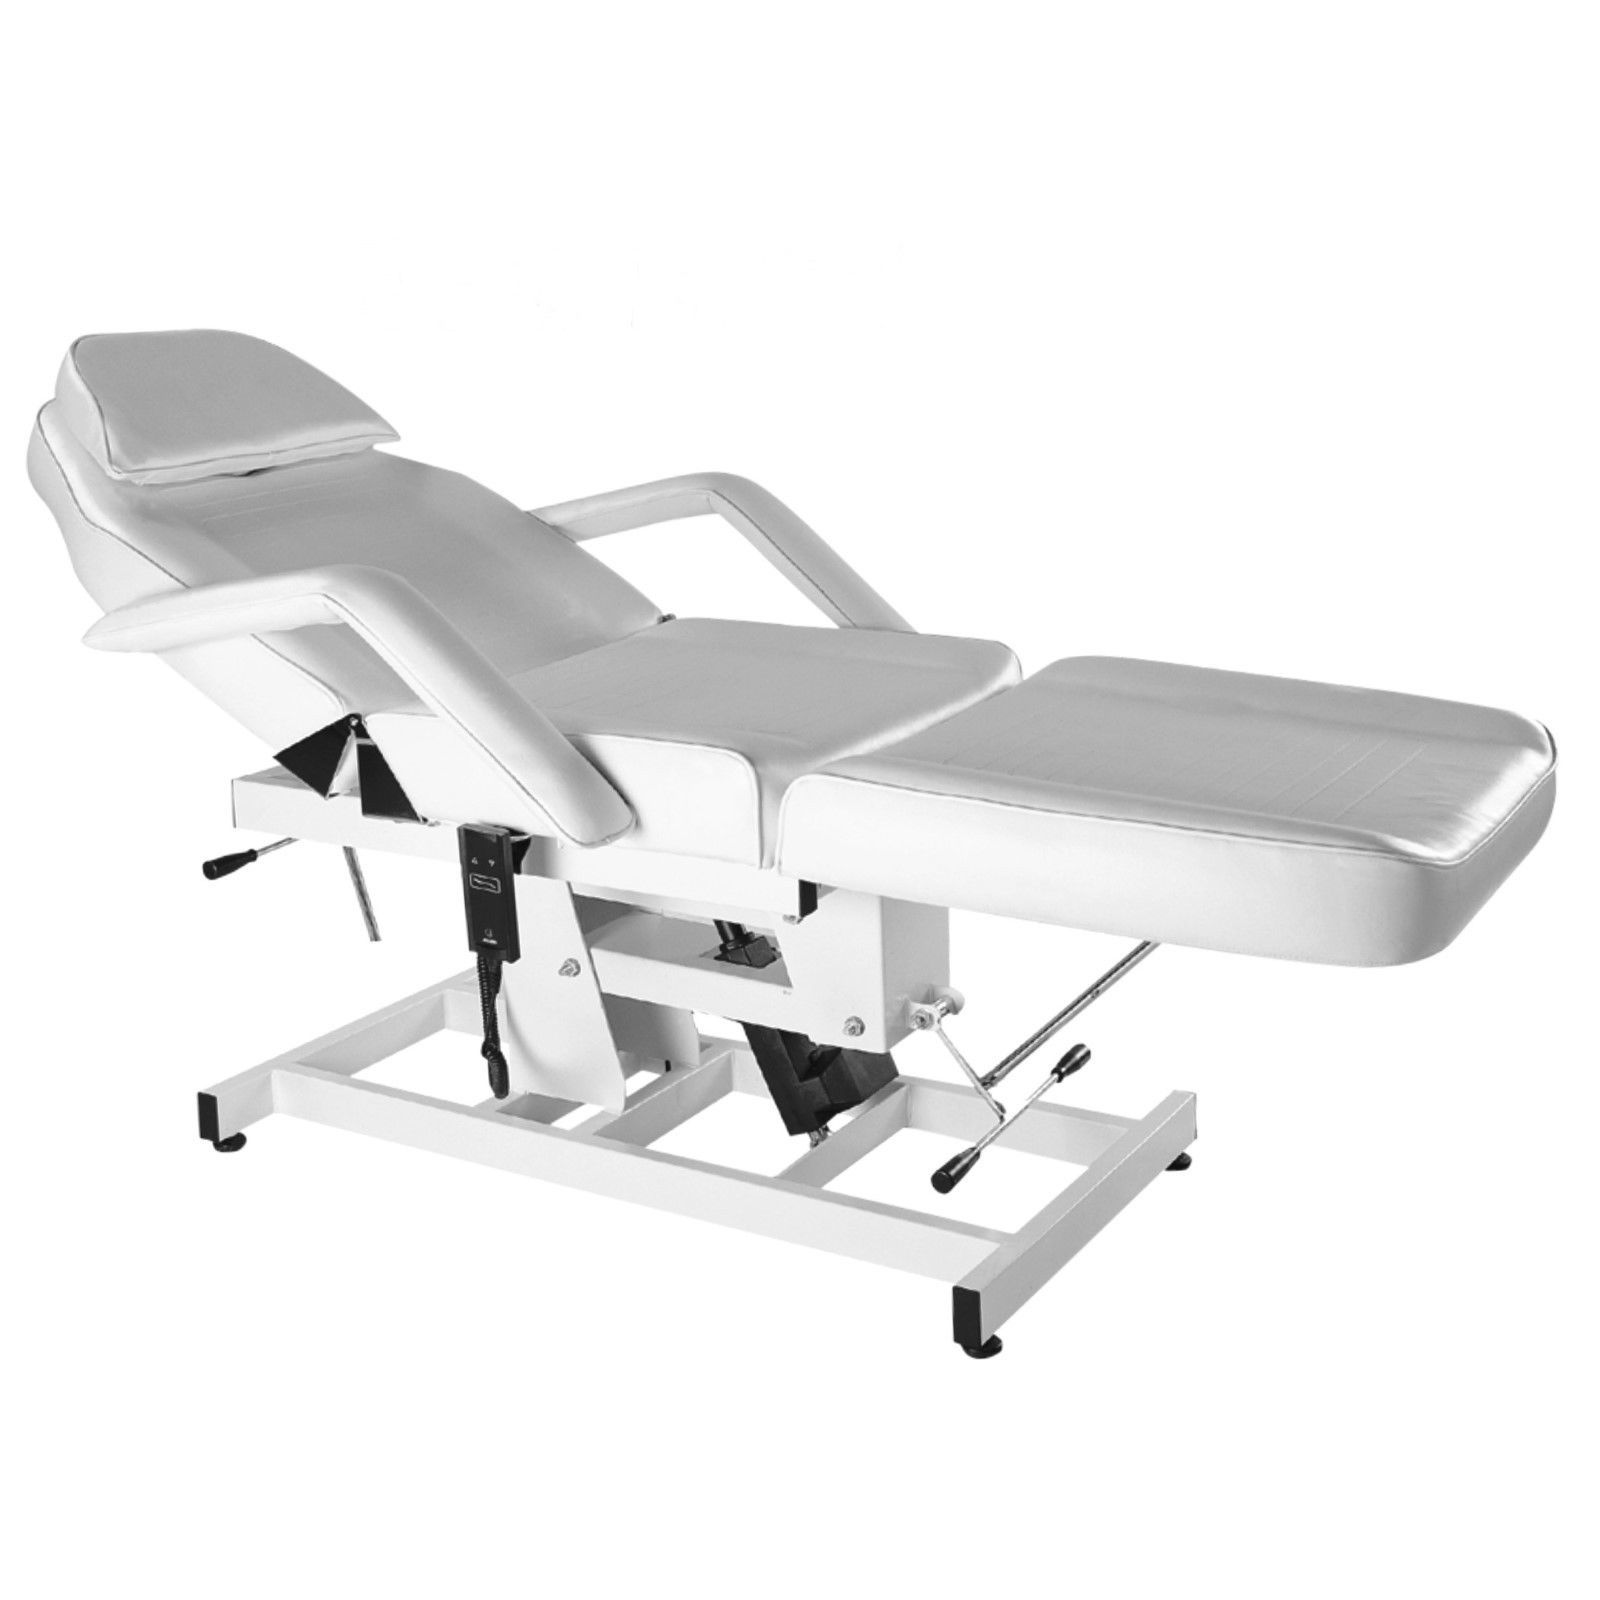 Electric Beauty Bed 1 Motor White